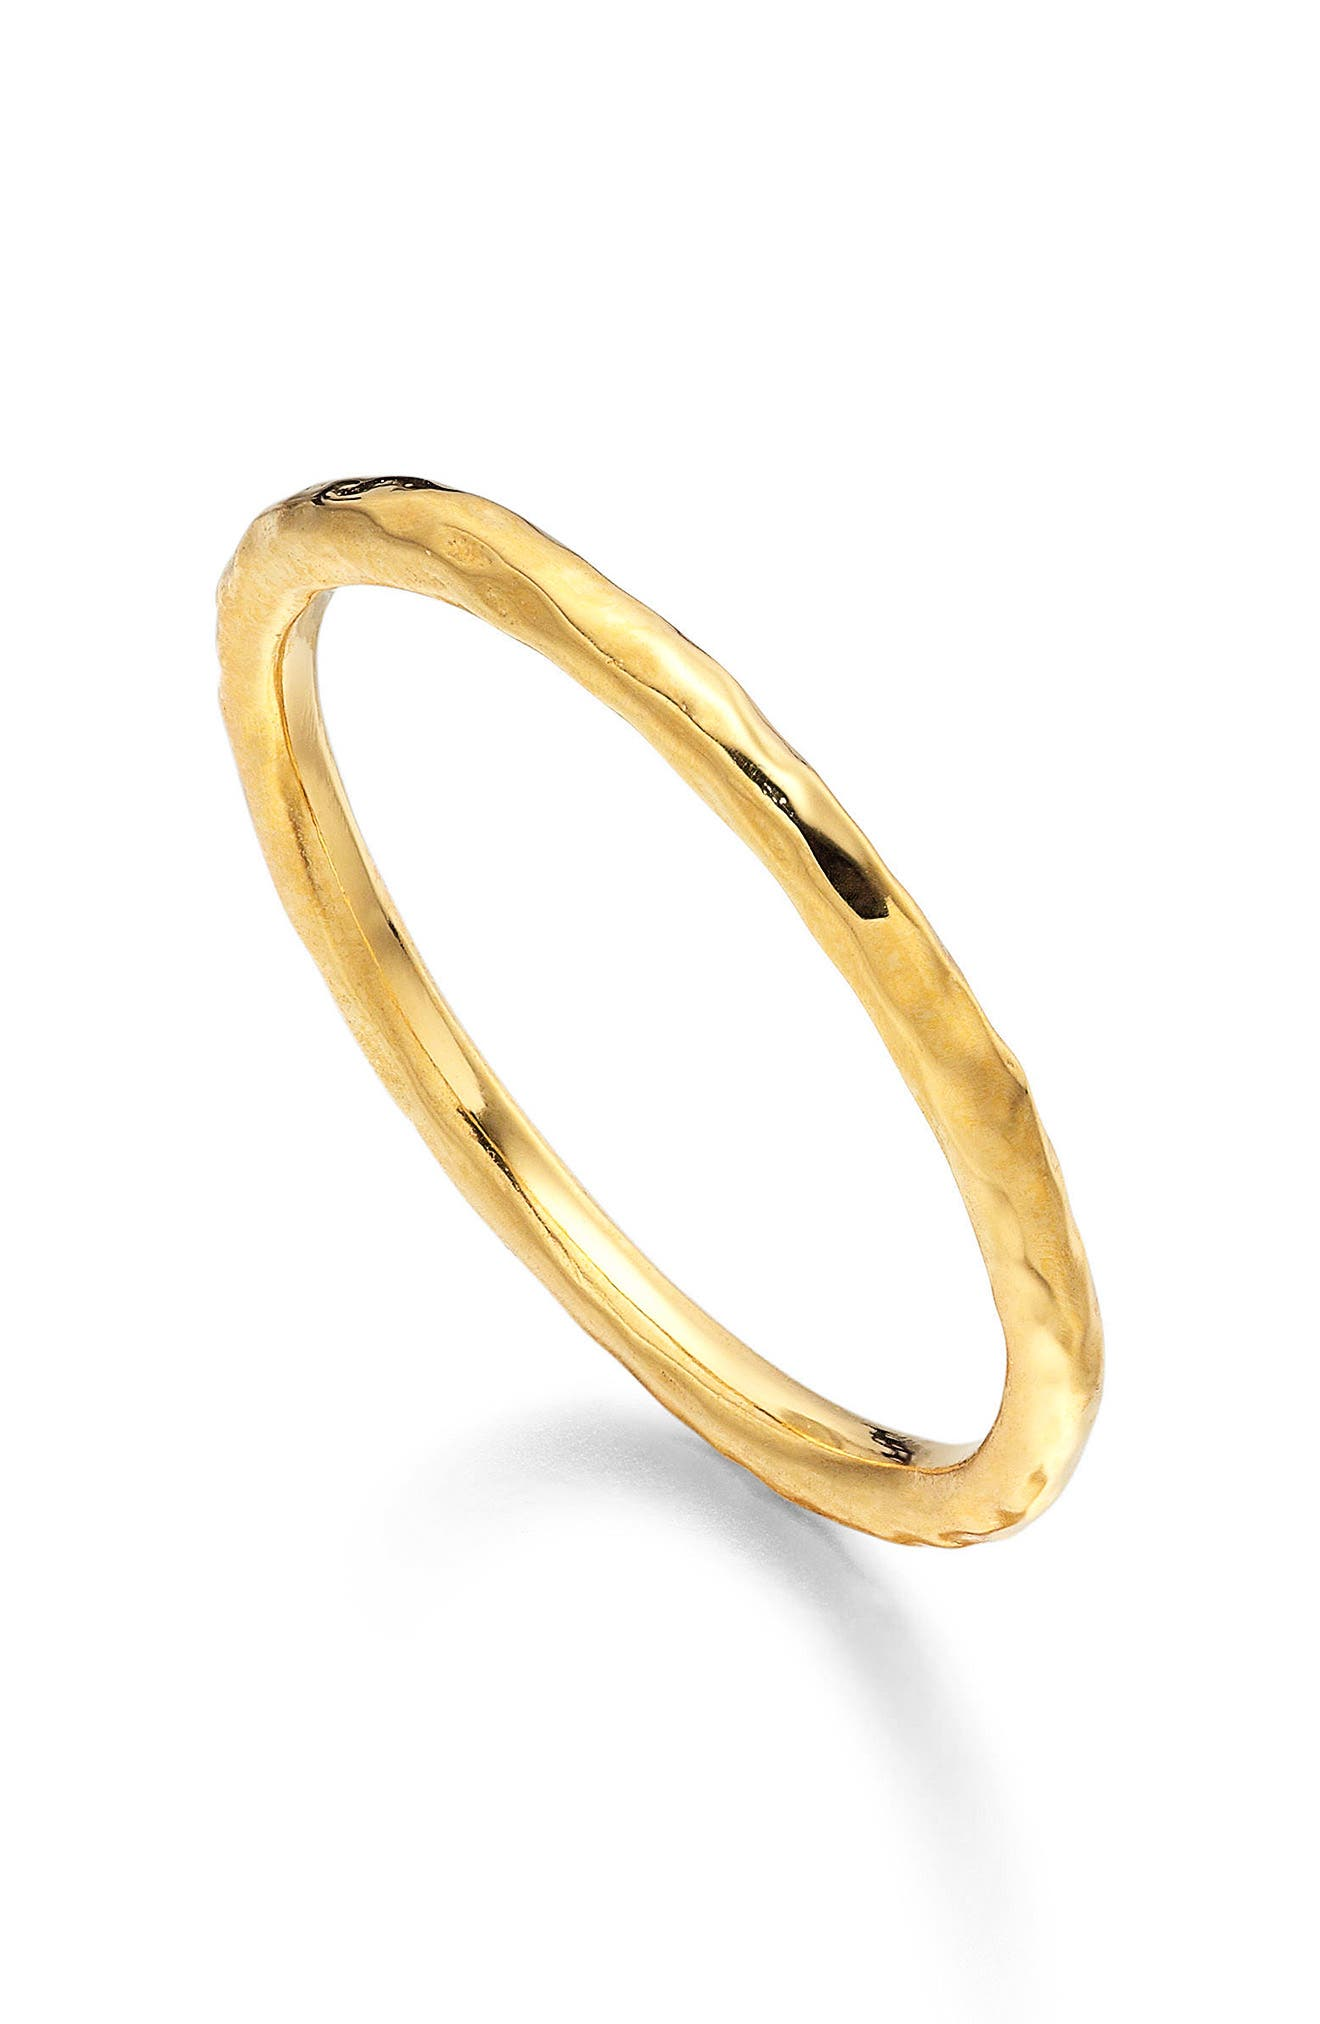 Siren Hammered Ring,                         Main,                         color, GOLD